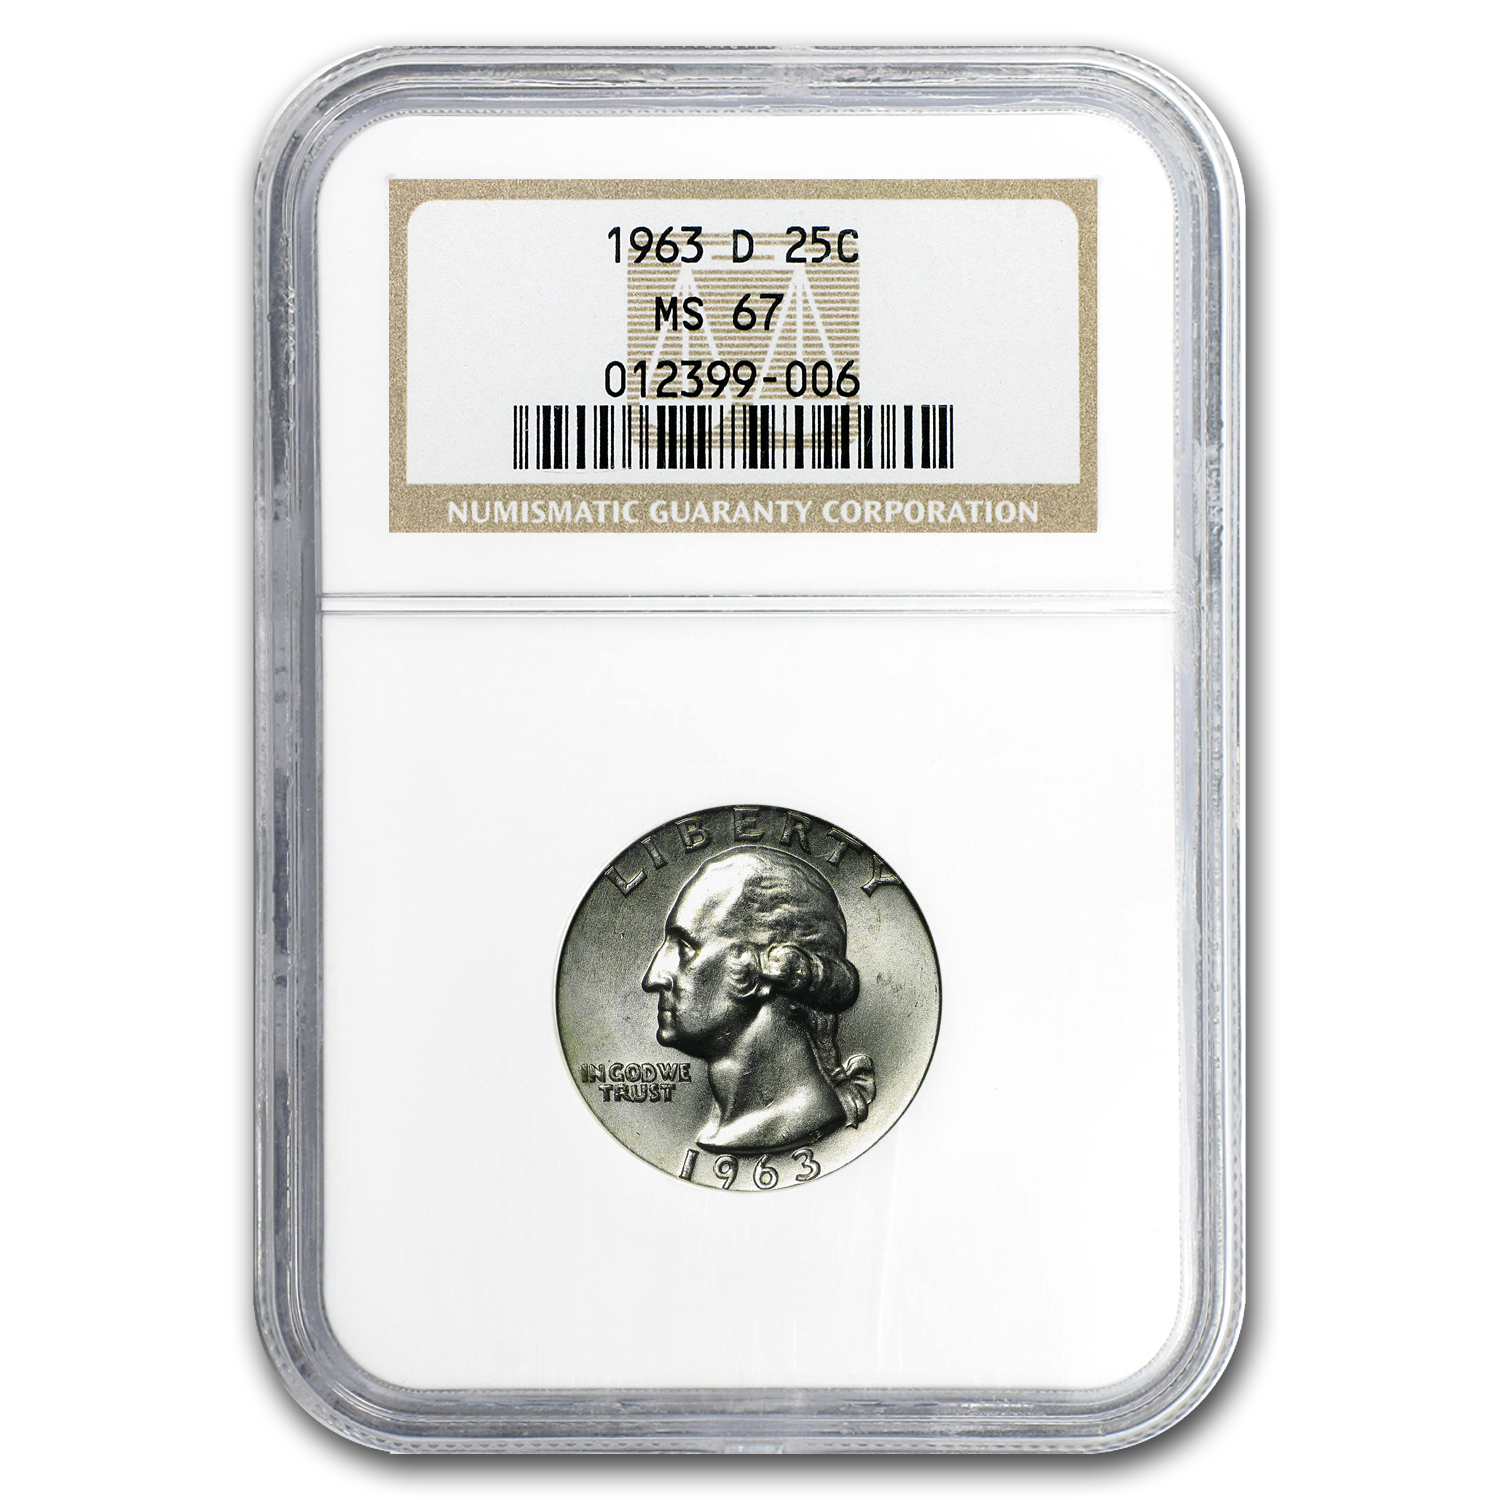 1963-D Washington Quarter MS-67 NGC